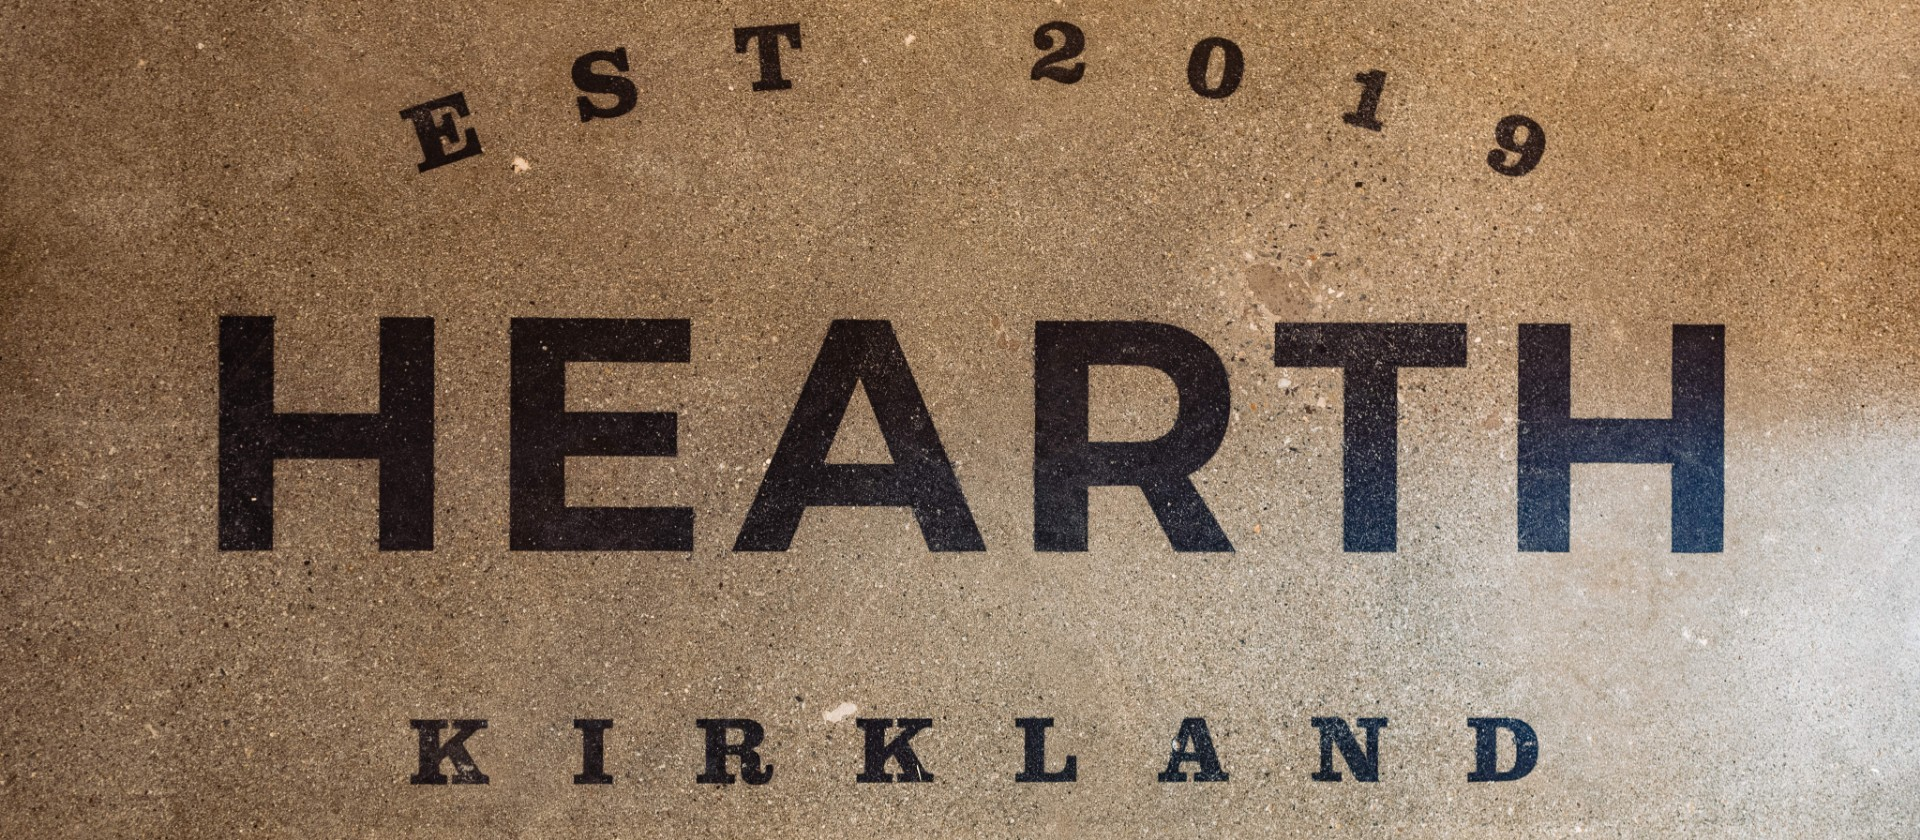 Hearth Floor Sign